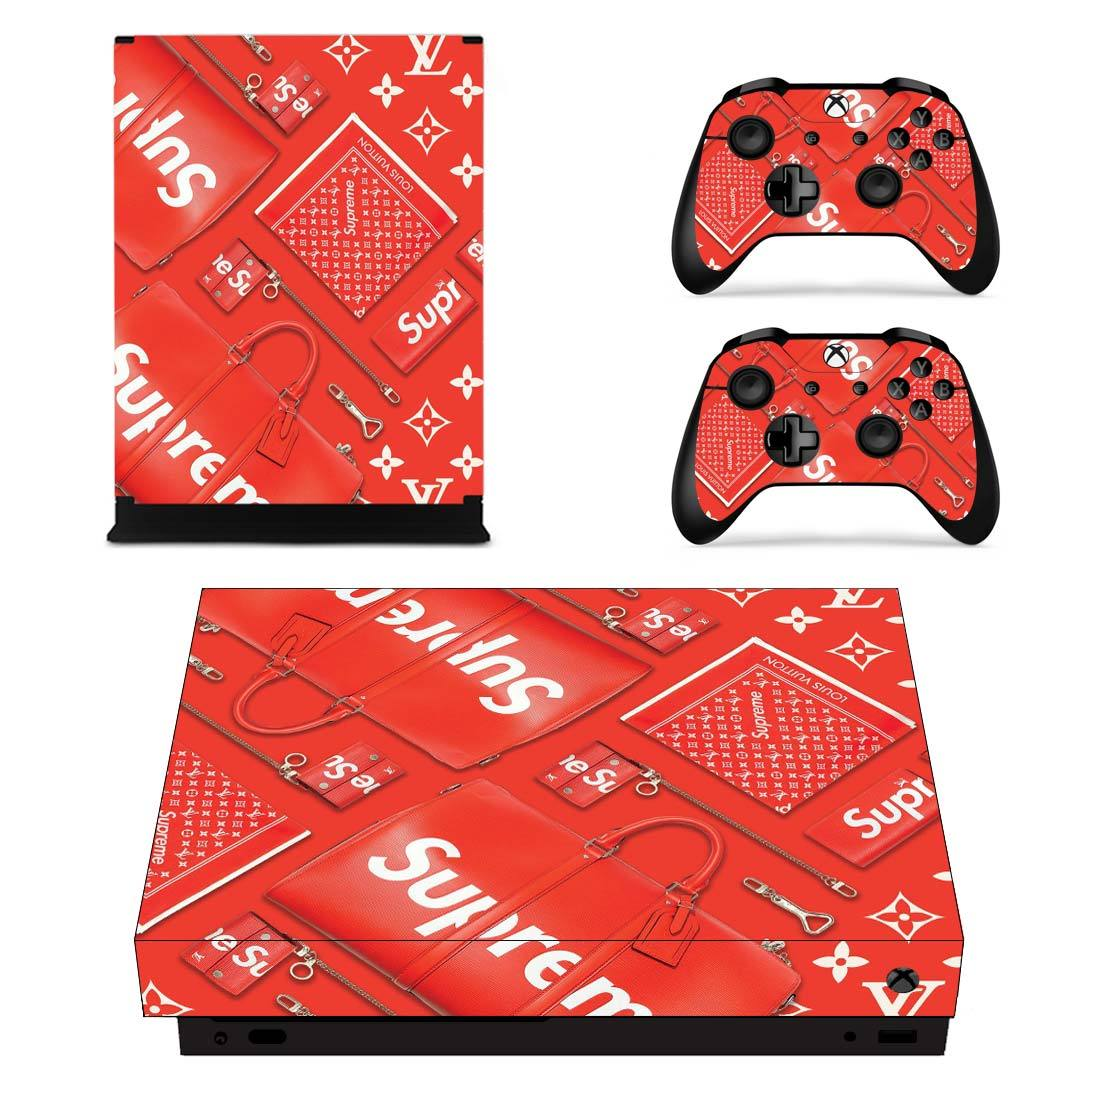 Supreme LV Collage Xbox One X Skin Sticker Wrap